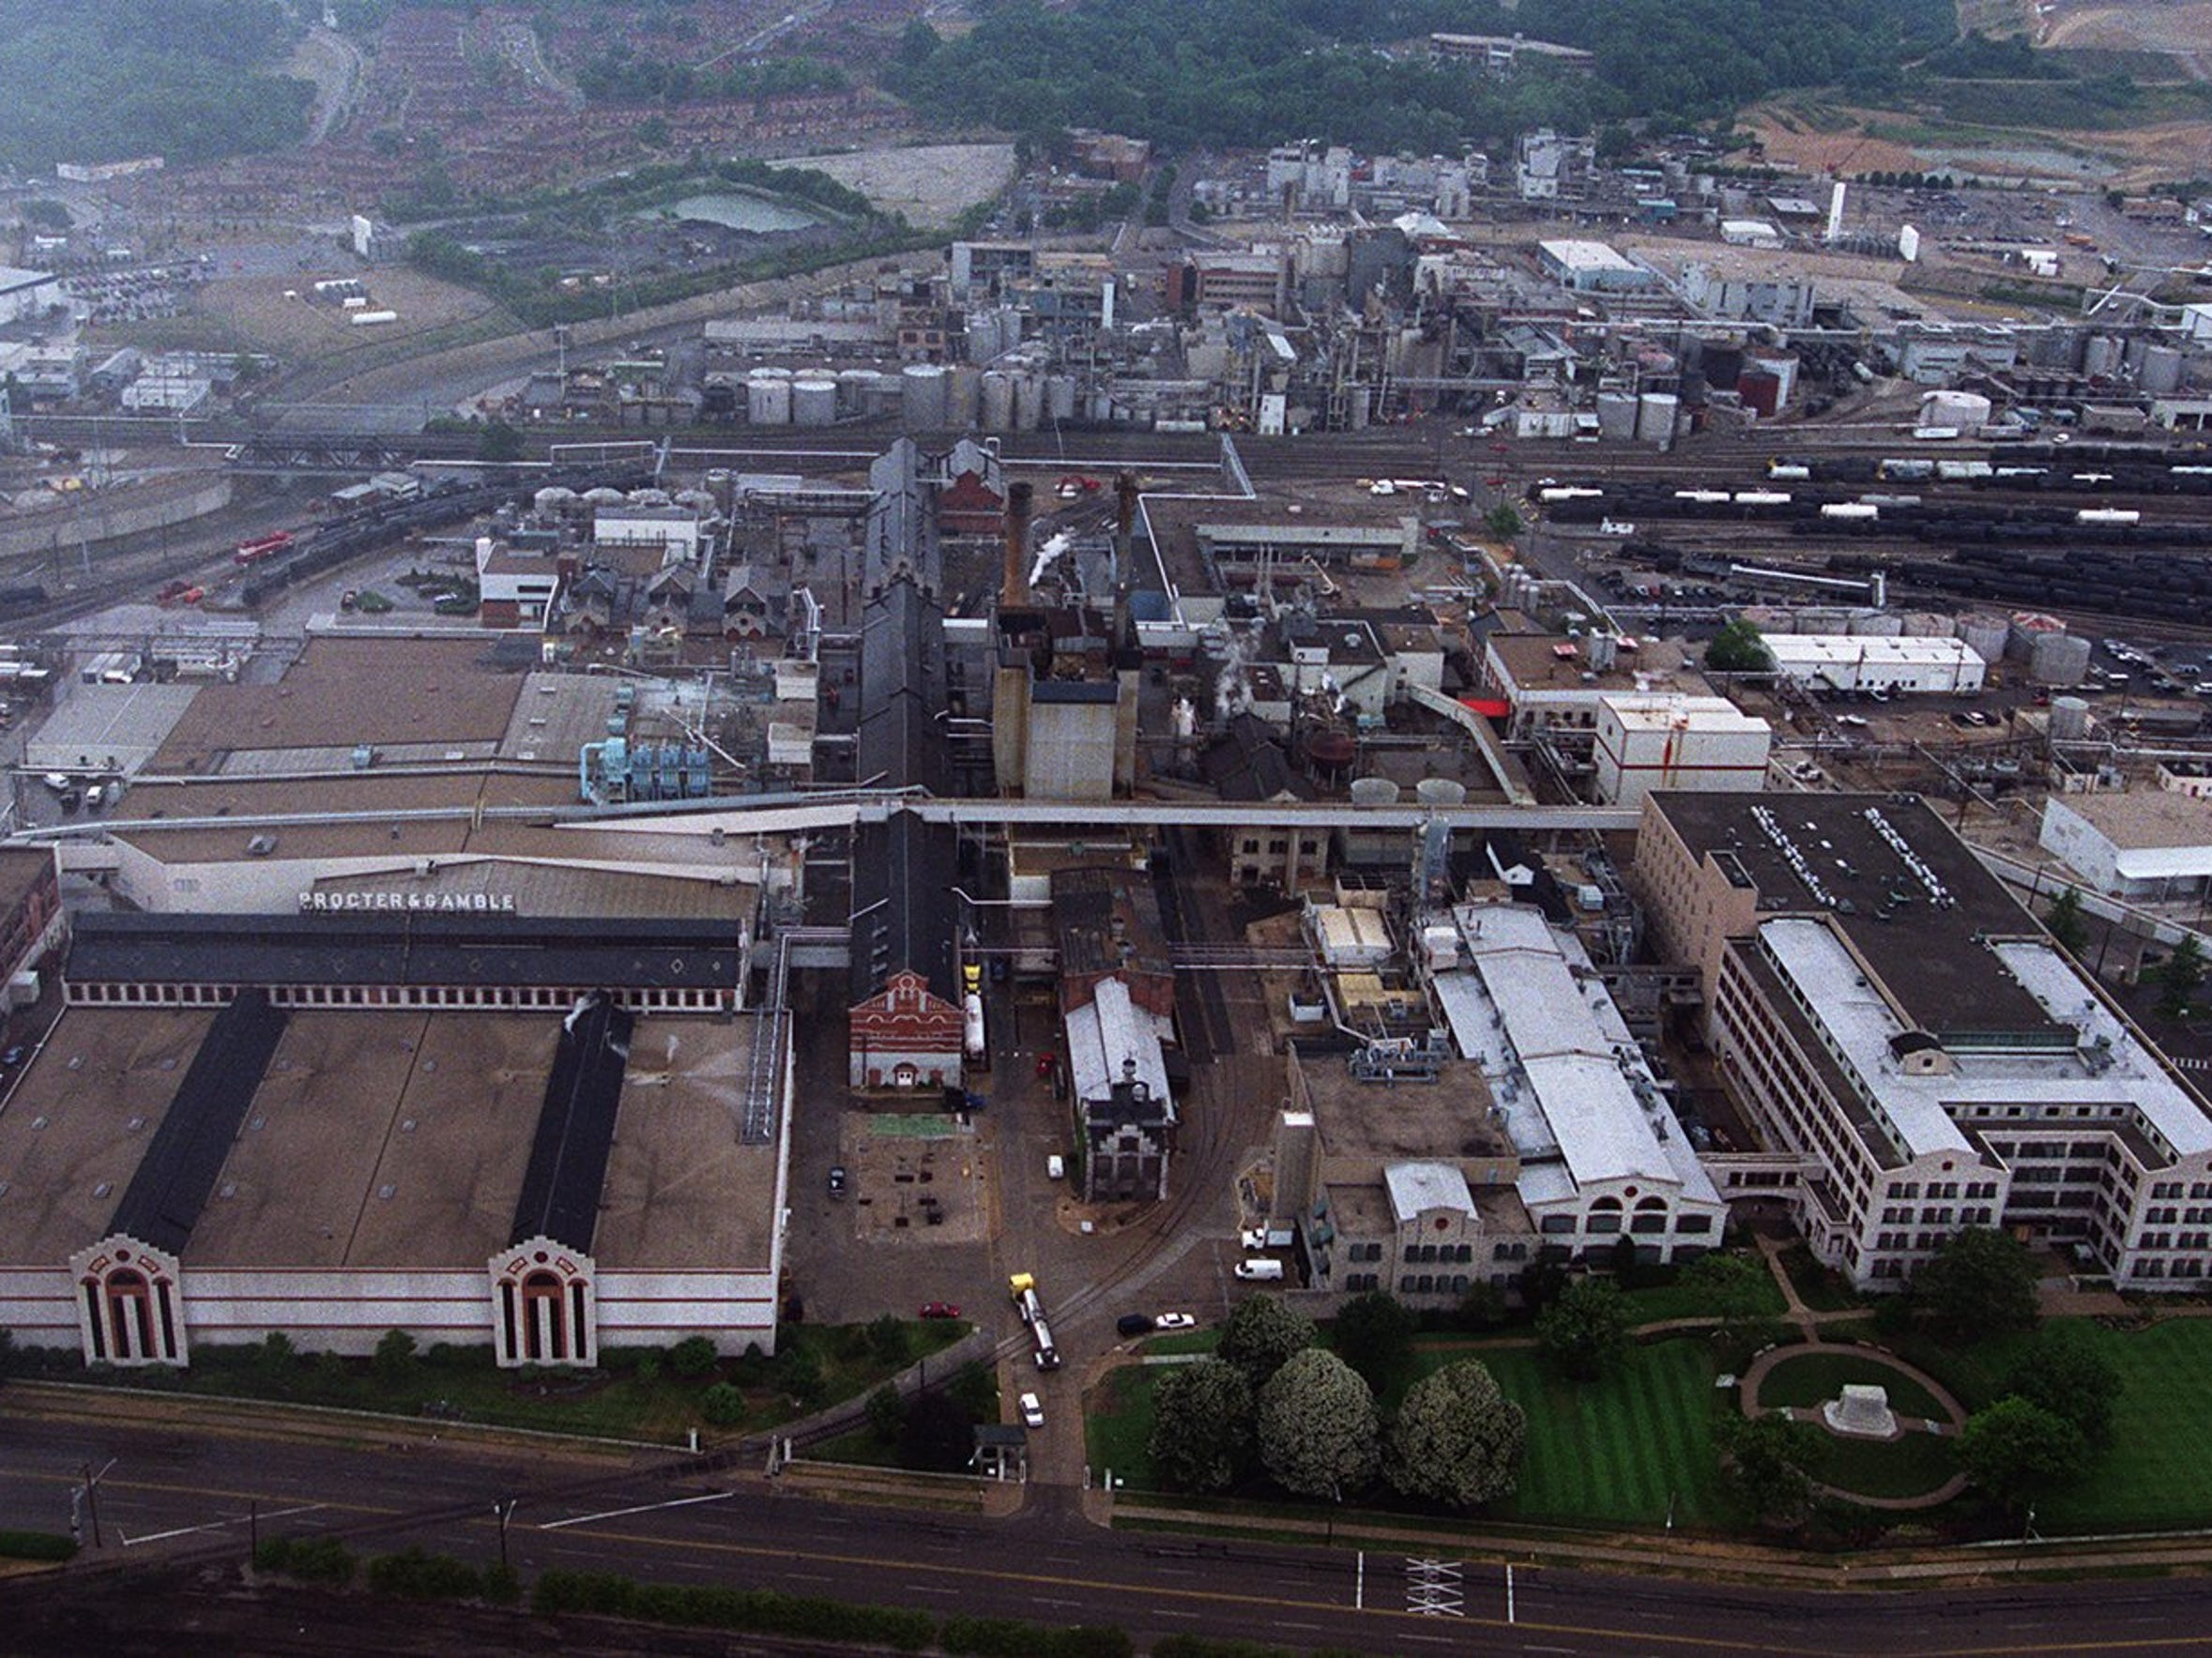 An aerial view of the Procter & Gamble Ivorydale plant.